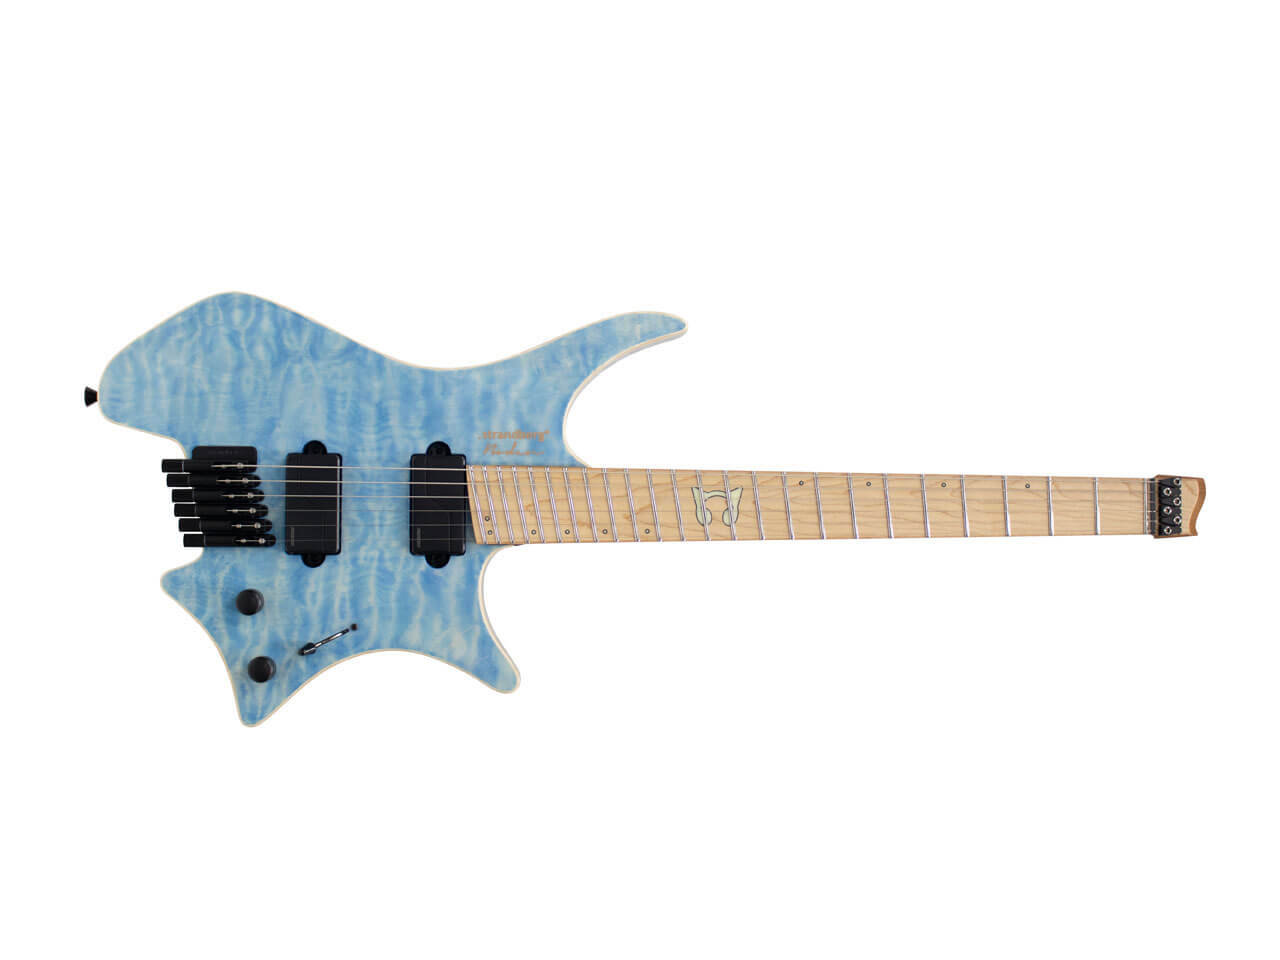 【BanG Dream! RAISE A SUILEN×Strandberg コラボレーション】strandberg Boden J6 RAS LOCK -Caribbean Light Blue- / RAISE A SUILEN LOCK MODEL【ご予約商品】